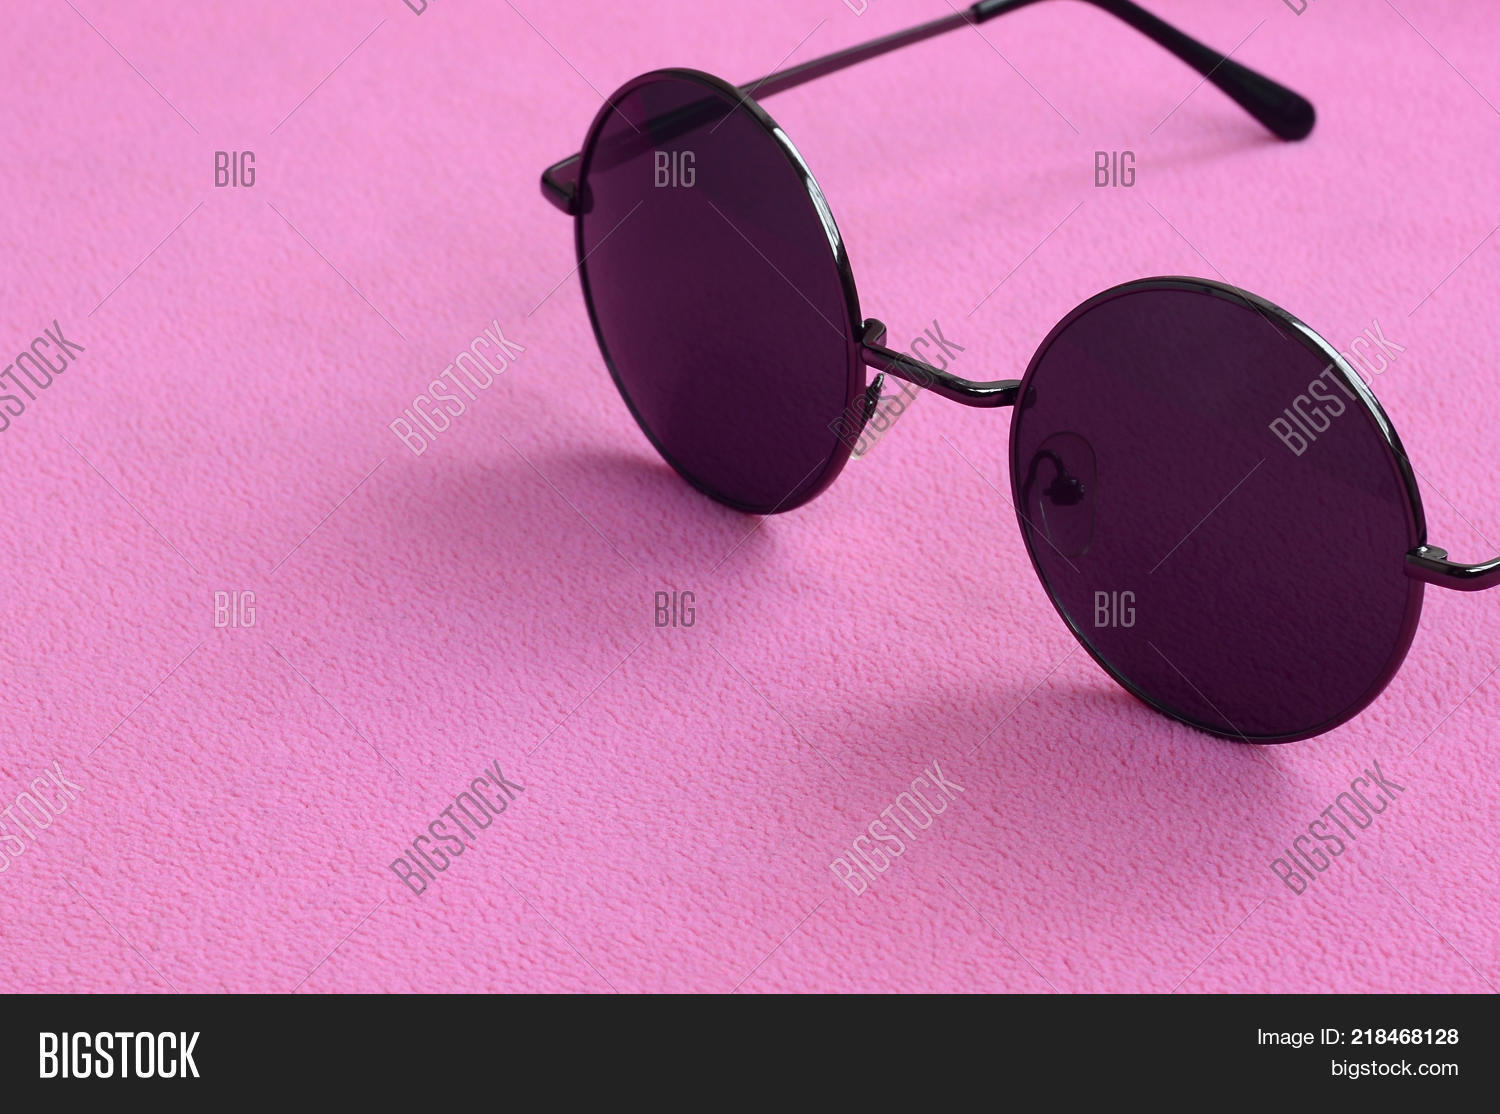 77abdd13a27e Stylish black sunglasses with round glasses lies on a blanket made of soft  and fluffy light